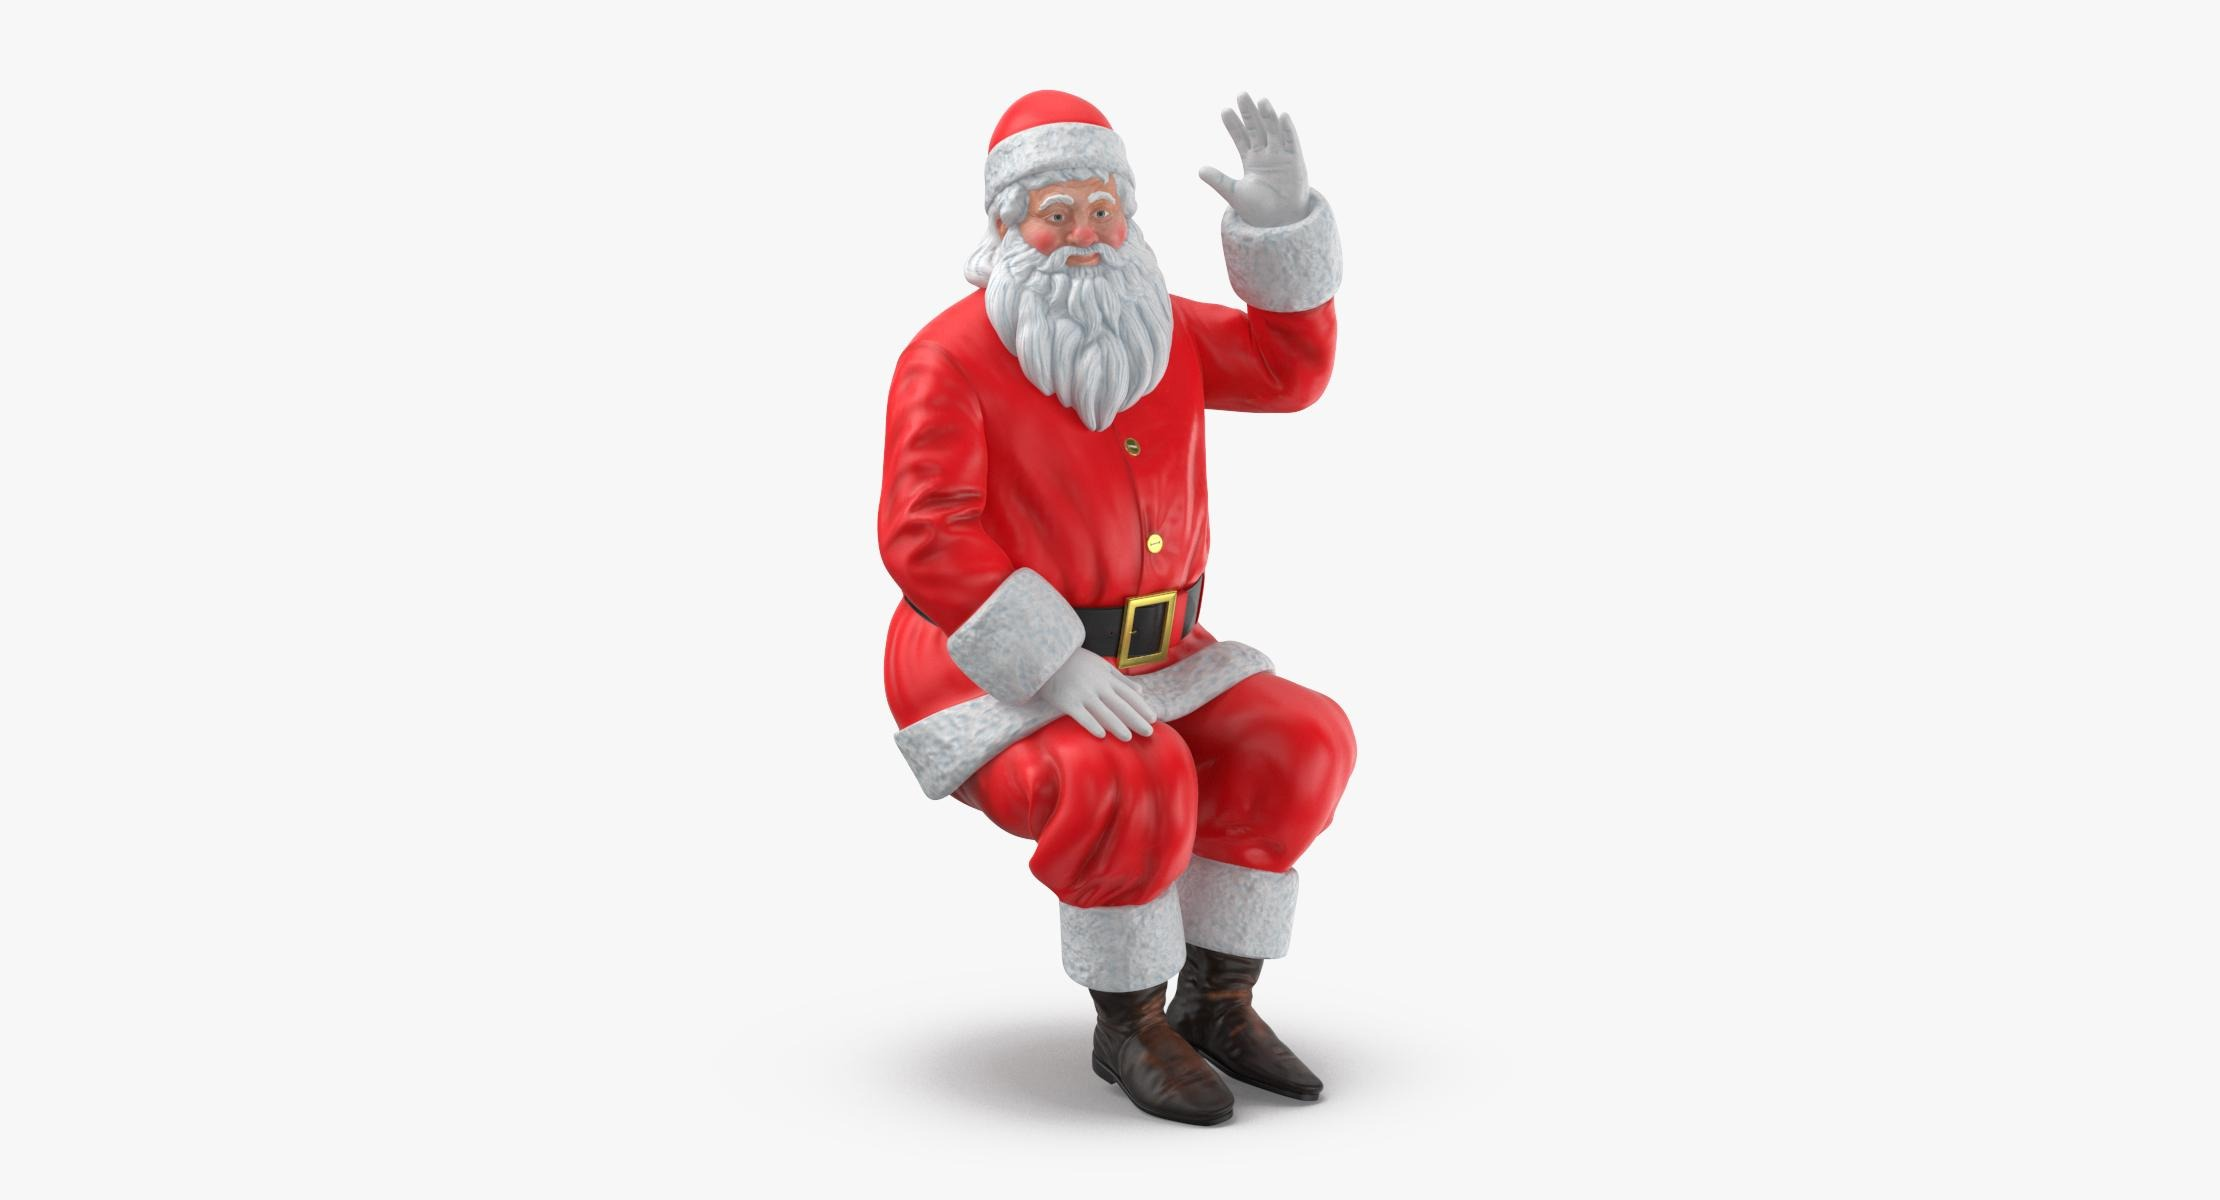 Santa Claus Figure Pose 04 - reel 1